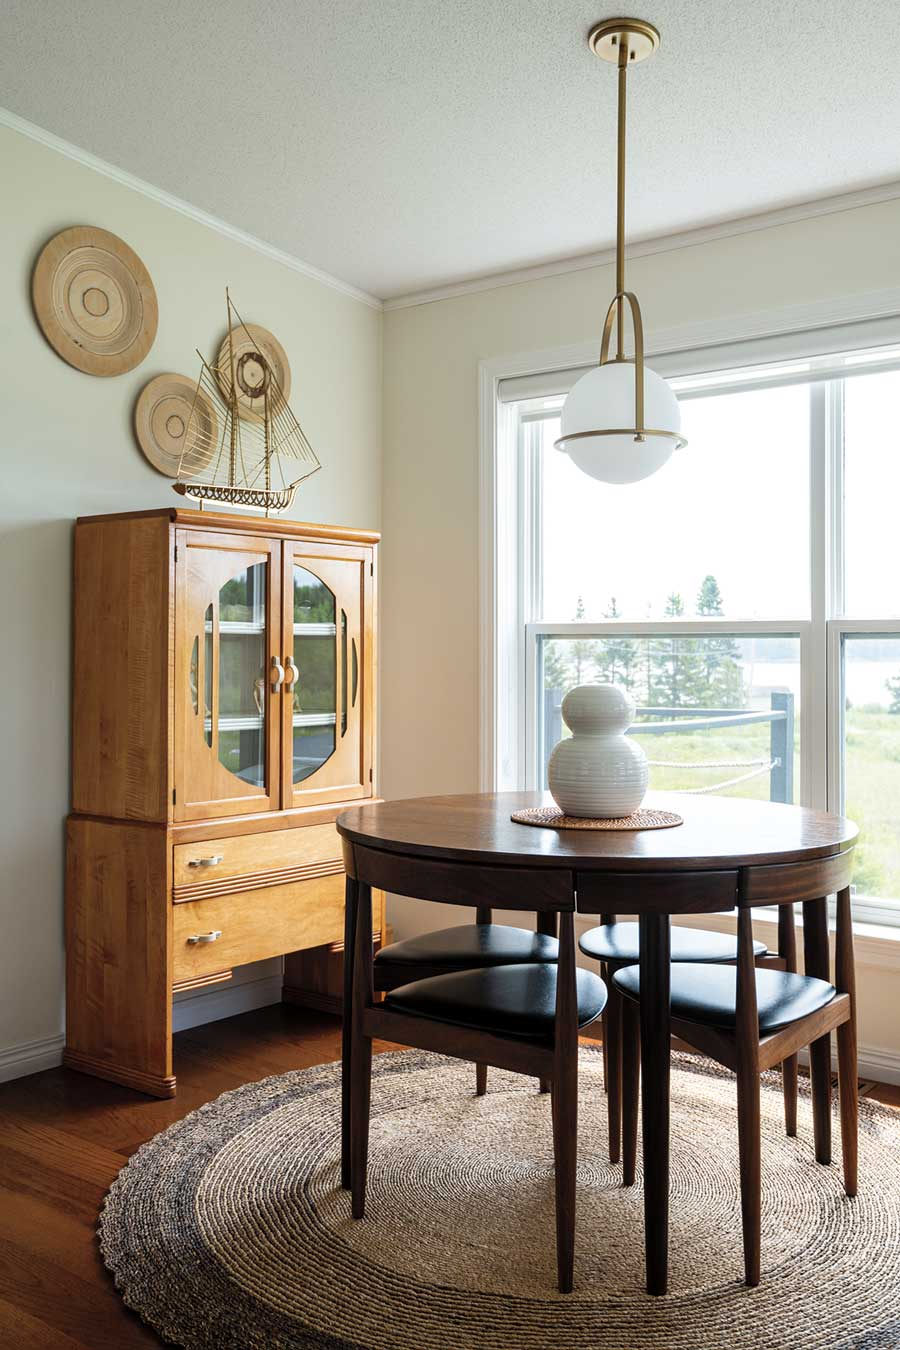 An Art Deco cabinet from Old Creamery Antique Mall in Ellsworth and a Hans Olsen Roundette table grace the pine-sided main cottage